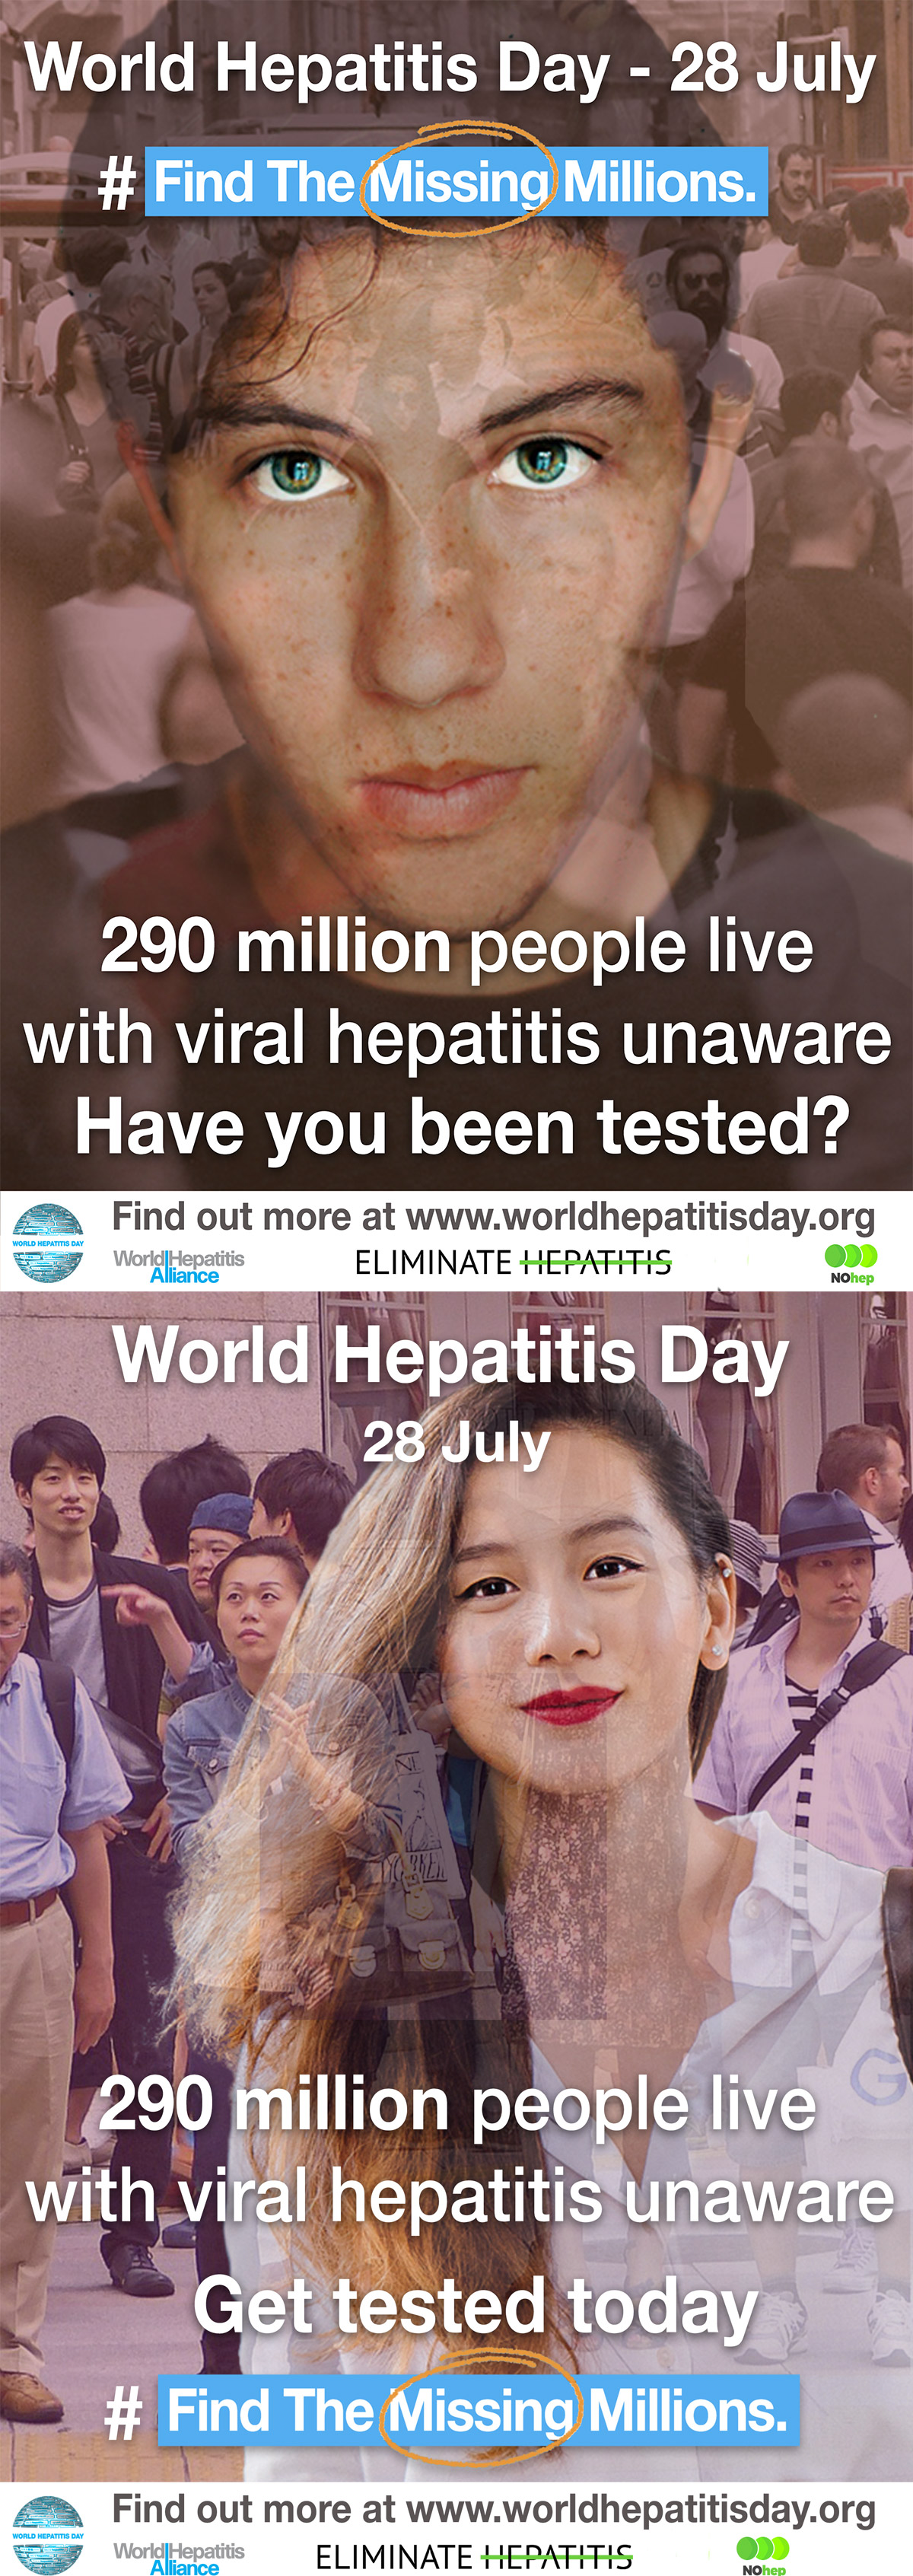 World Hepatitis Day July 28